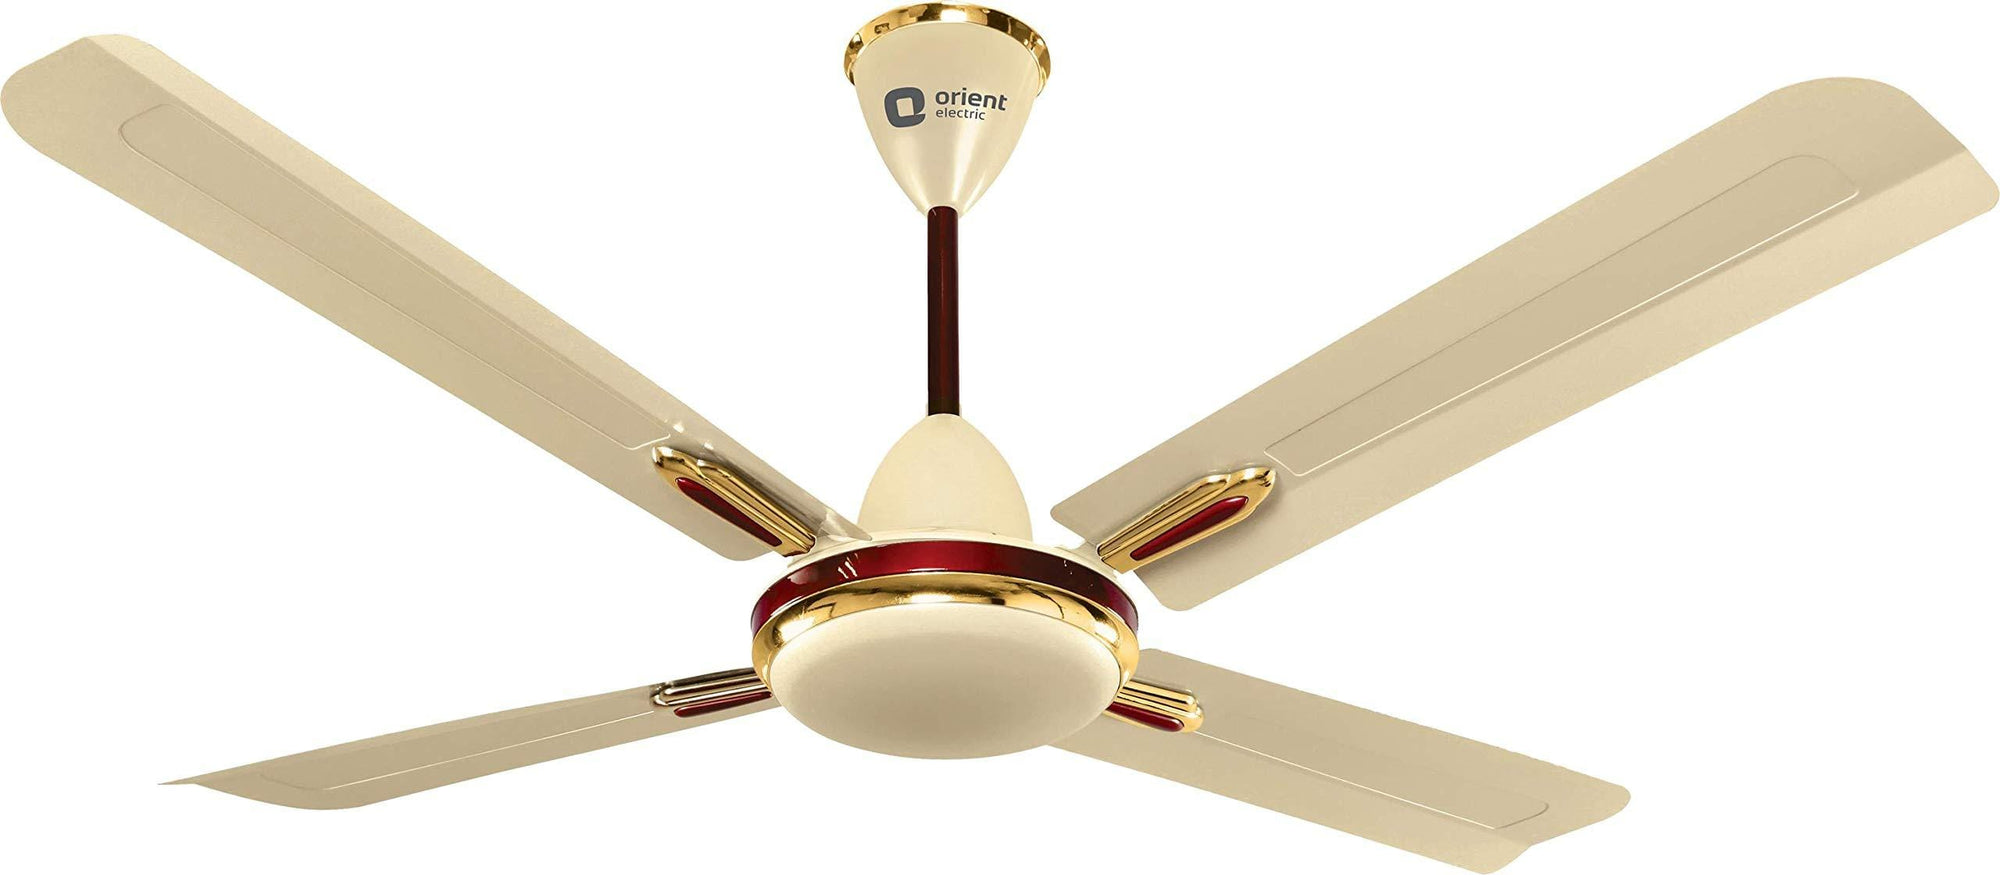 Orient Electric Quadro Ornamental 1200mm Ceiling Fan (Metallic Ivory/Cherry) - KITCHEN MART